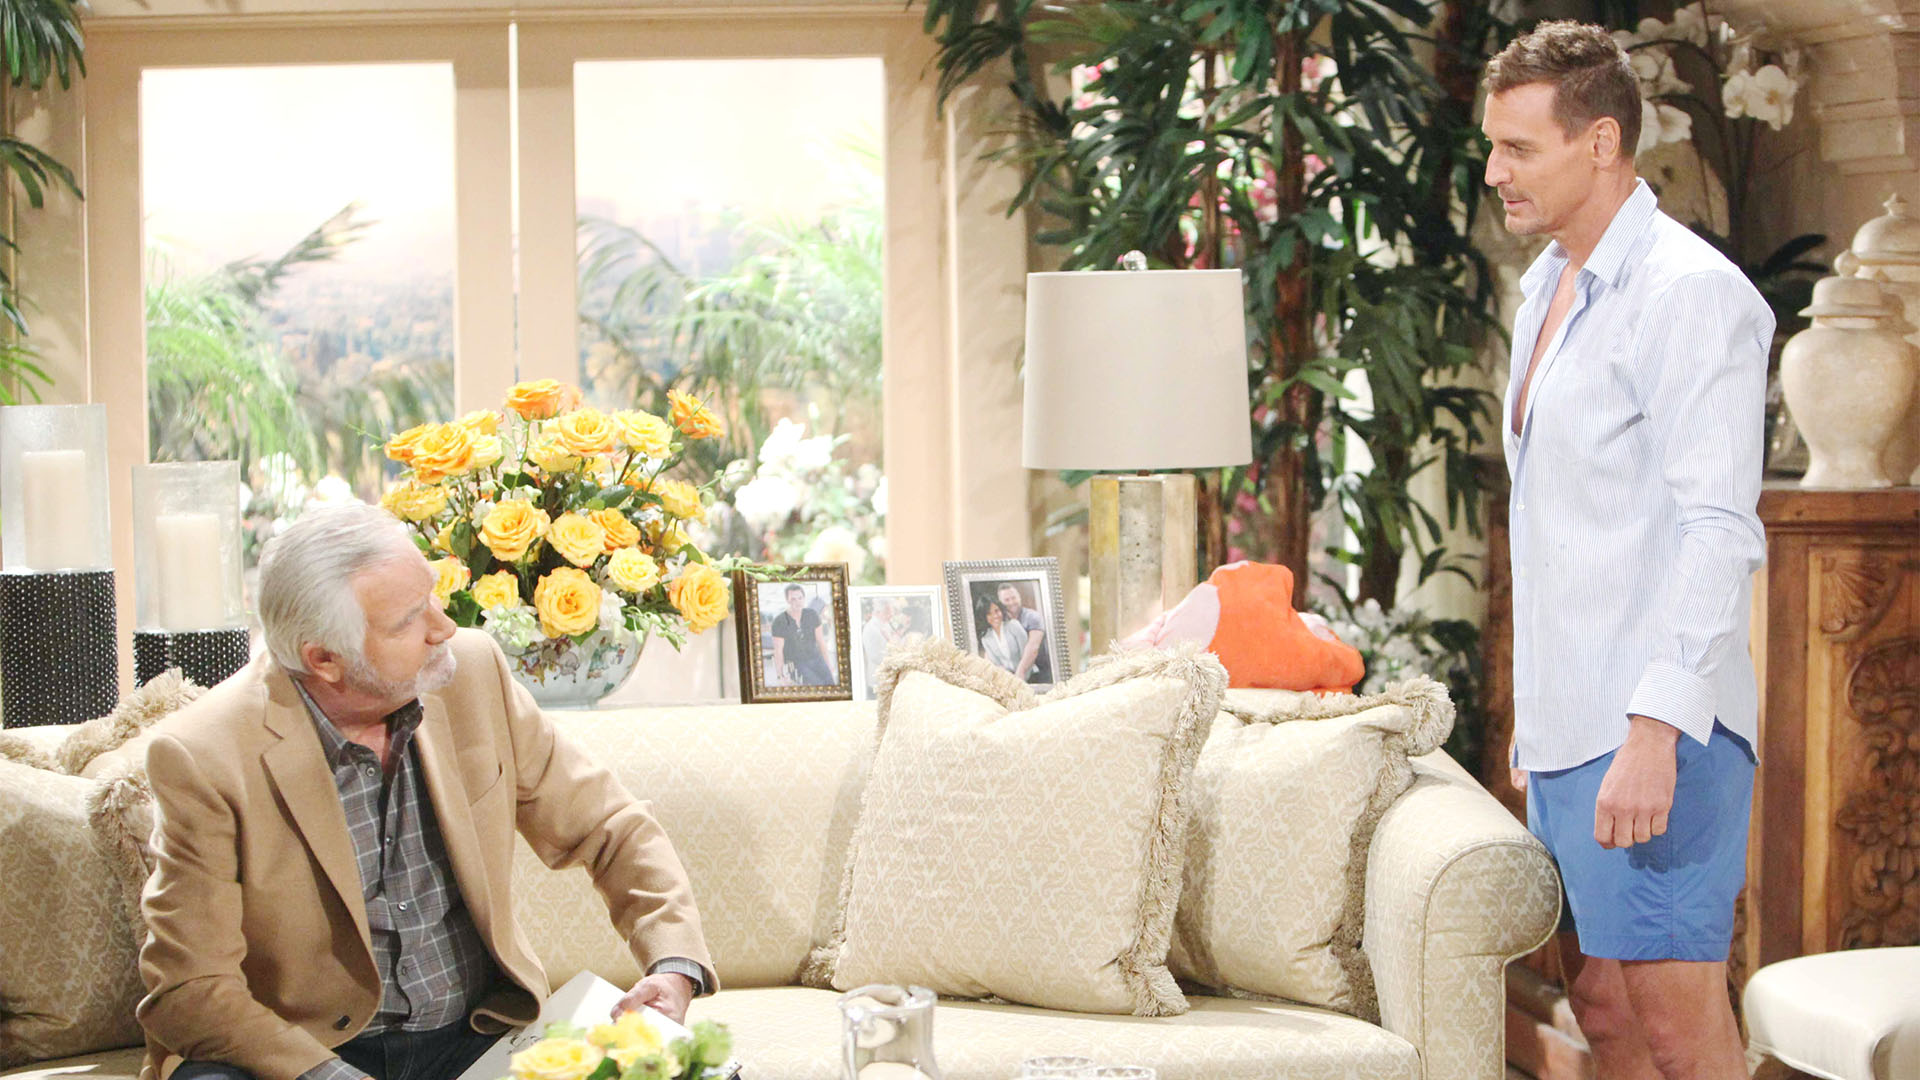 Thorne reveals the secret of what he's been doing Paris, and his desire to oust Ridge from Forrester Creations, to Eric.